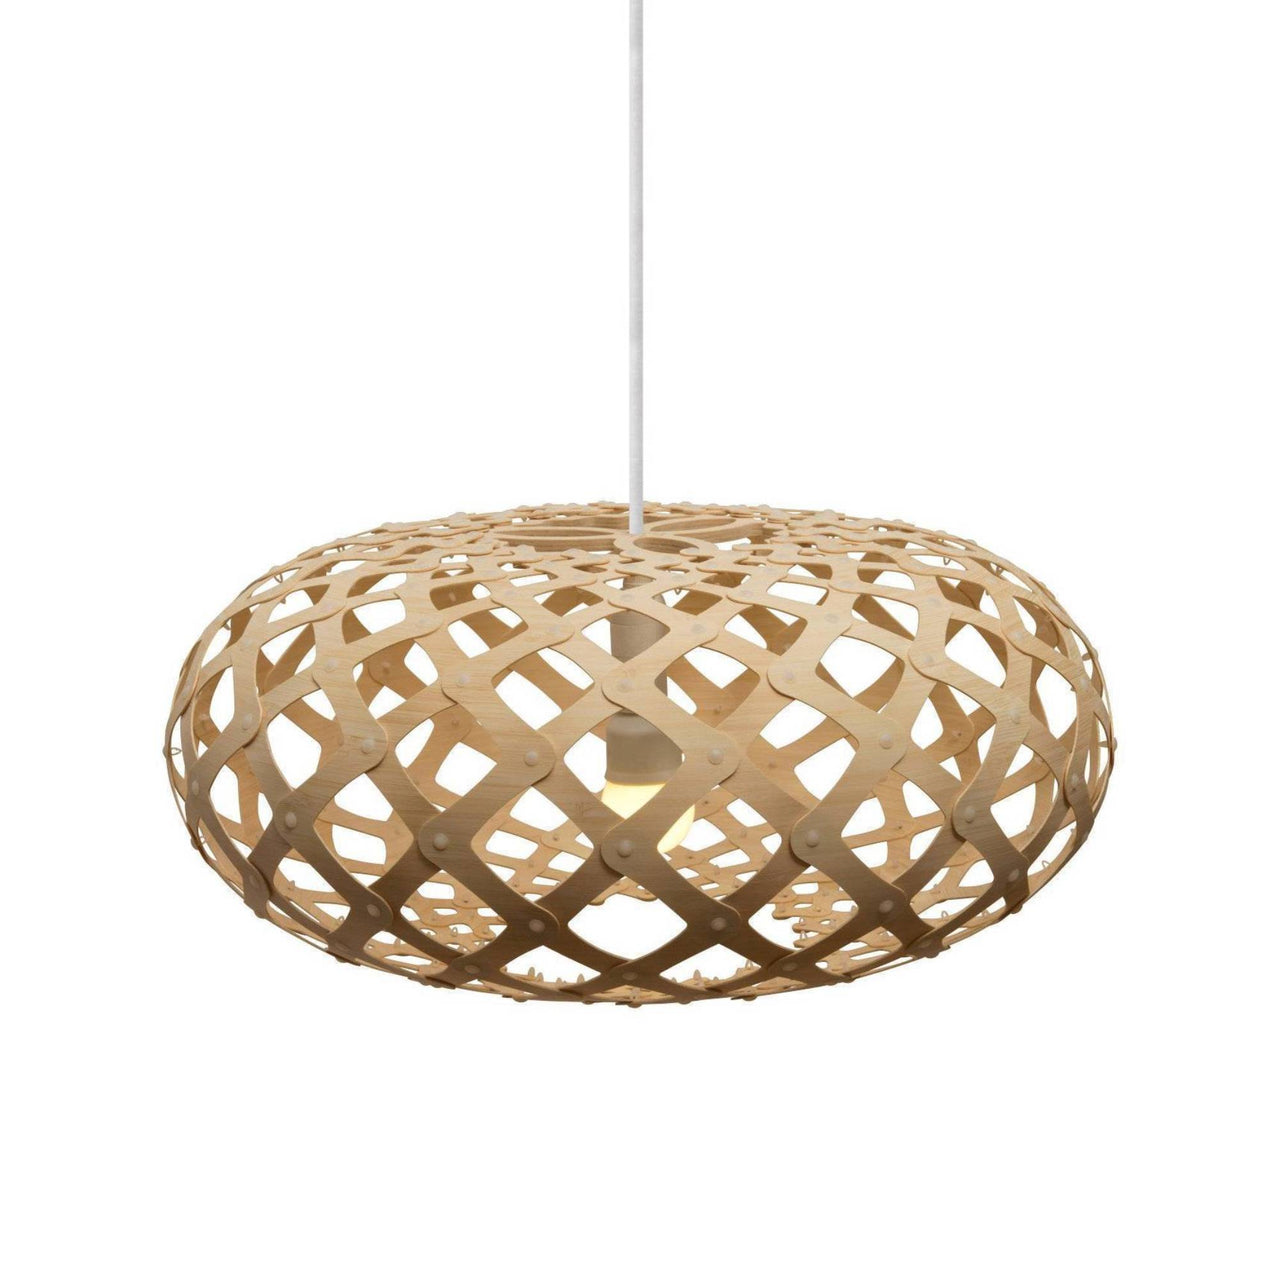 Kina Pendant Light: 600 + Natural